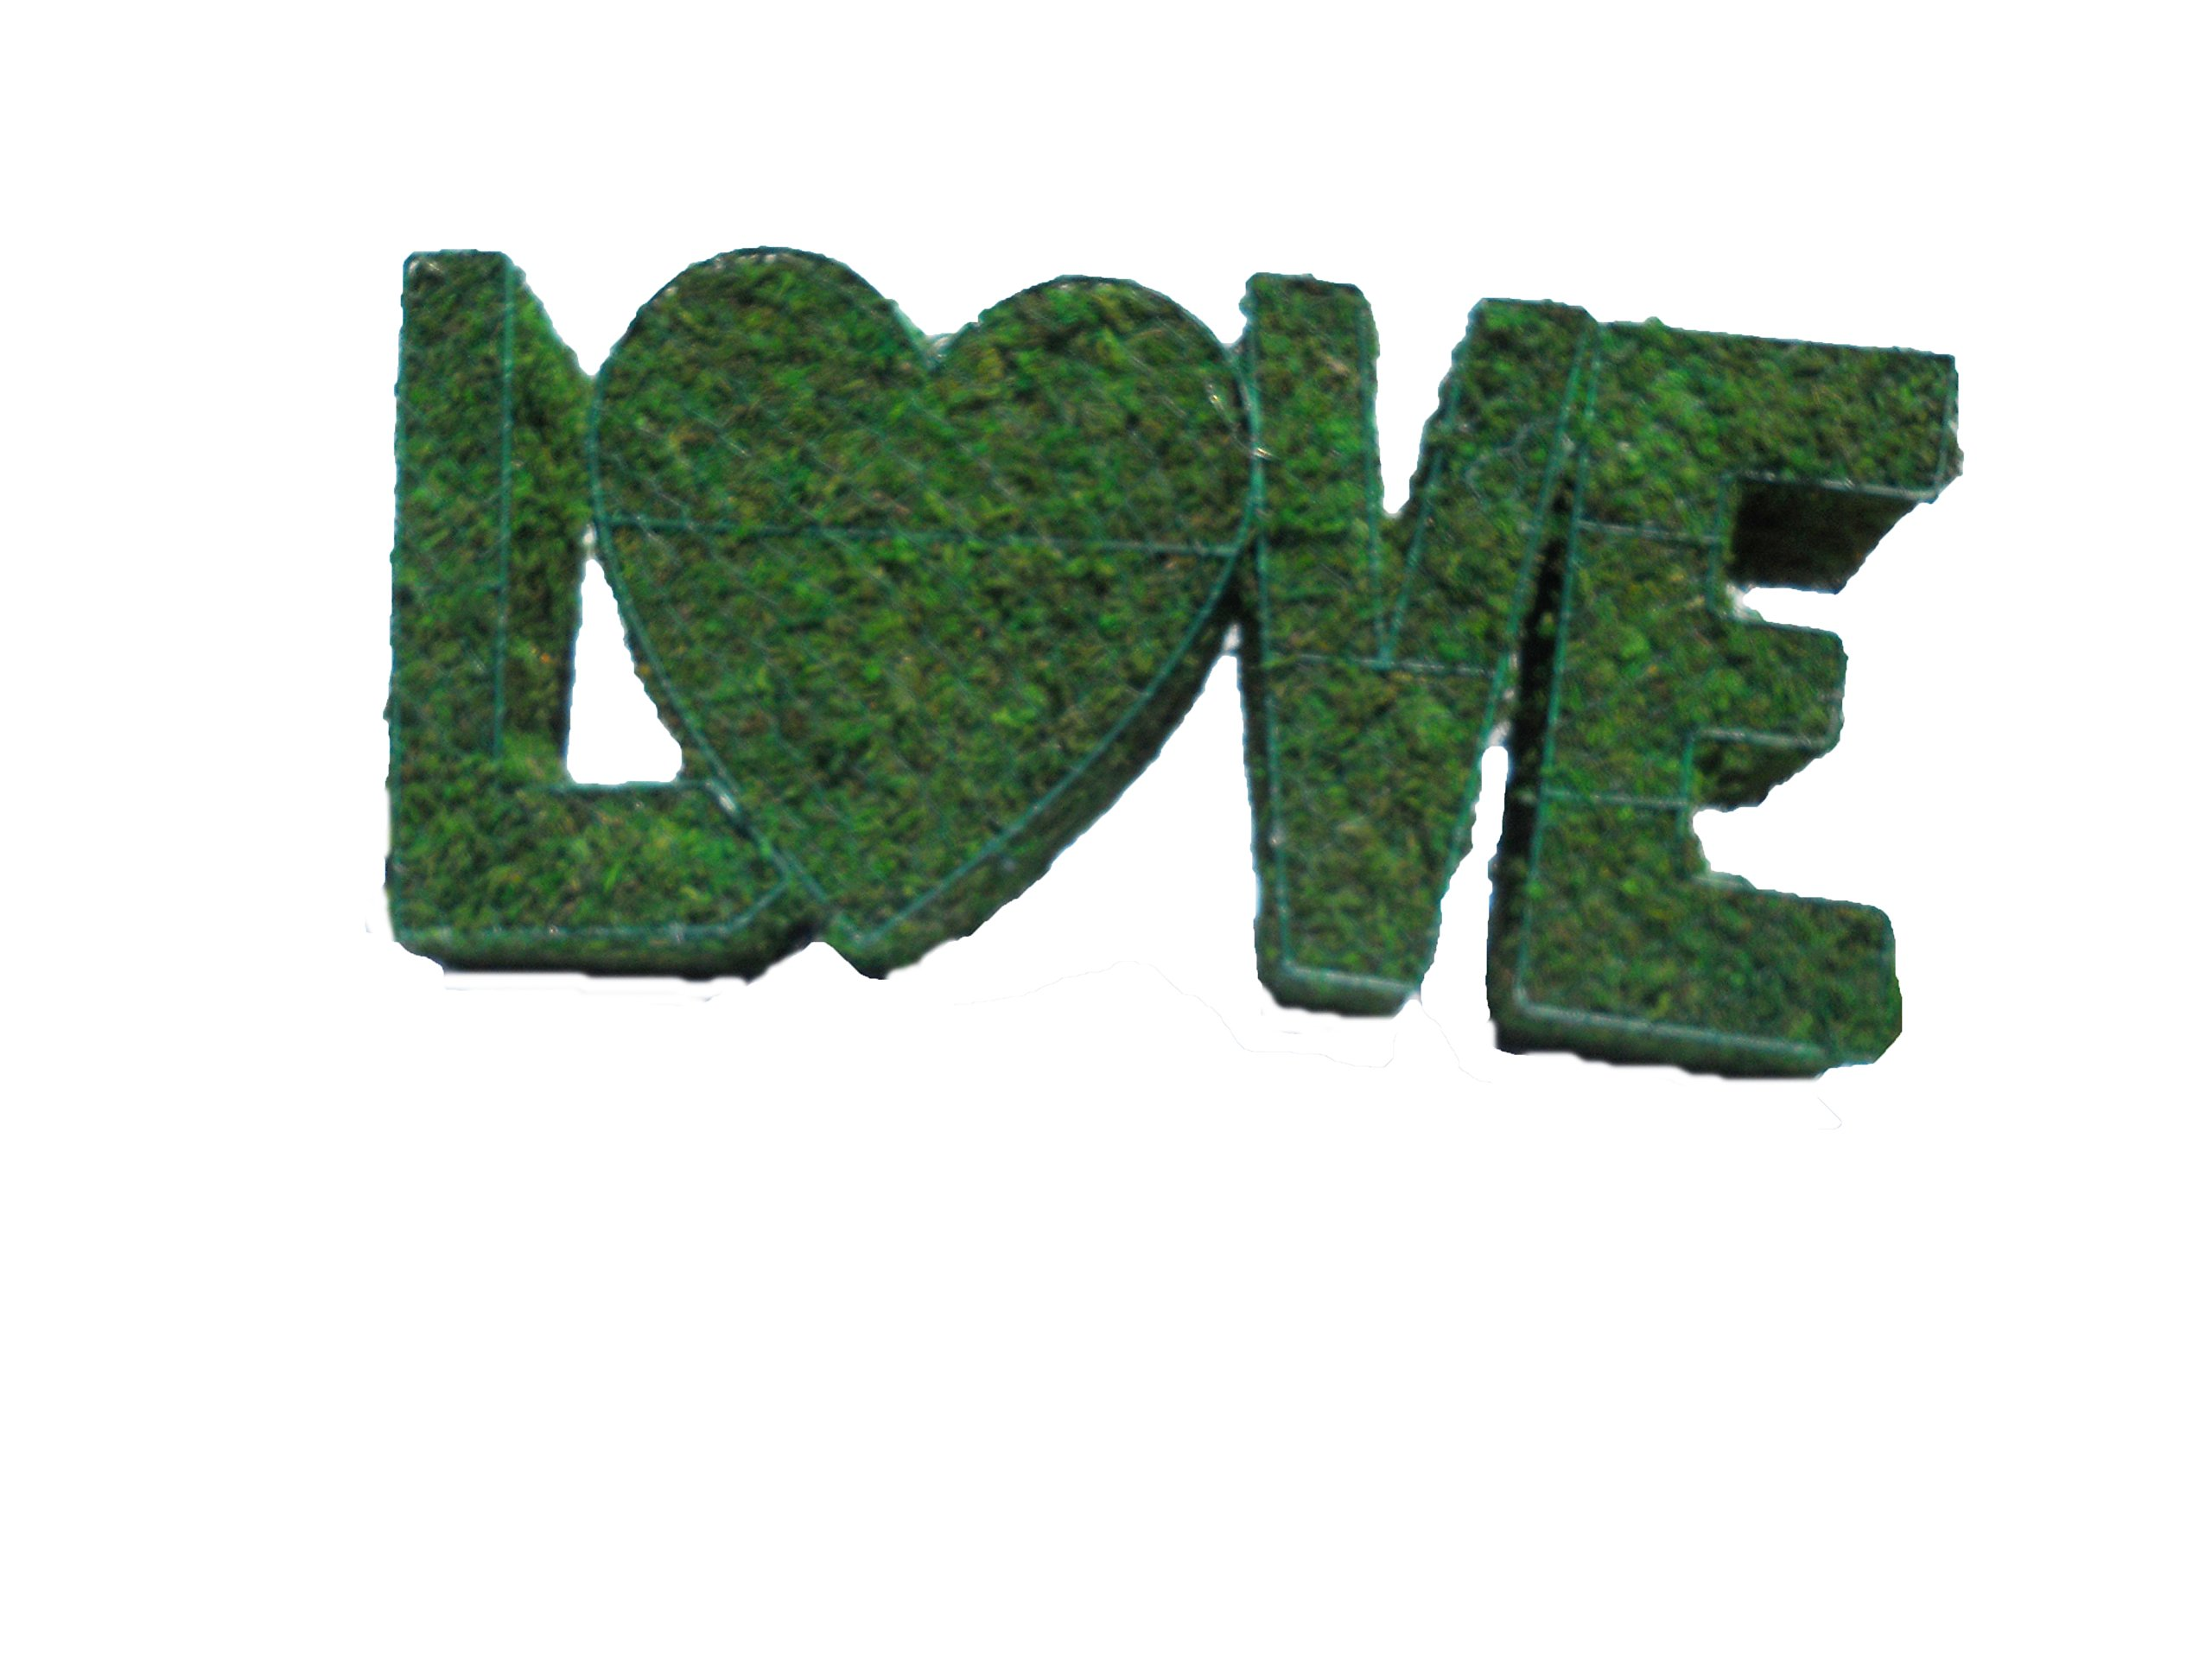 Love 25 inches long x 12 inches high x 6 inches wide Indoor Outdoor Hand Wired Animal Topiary Frame Structure Filled With Moss